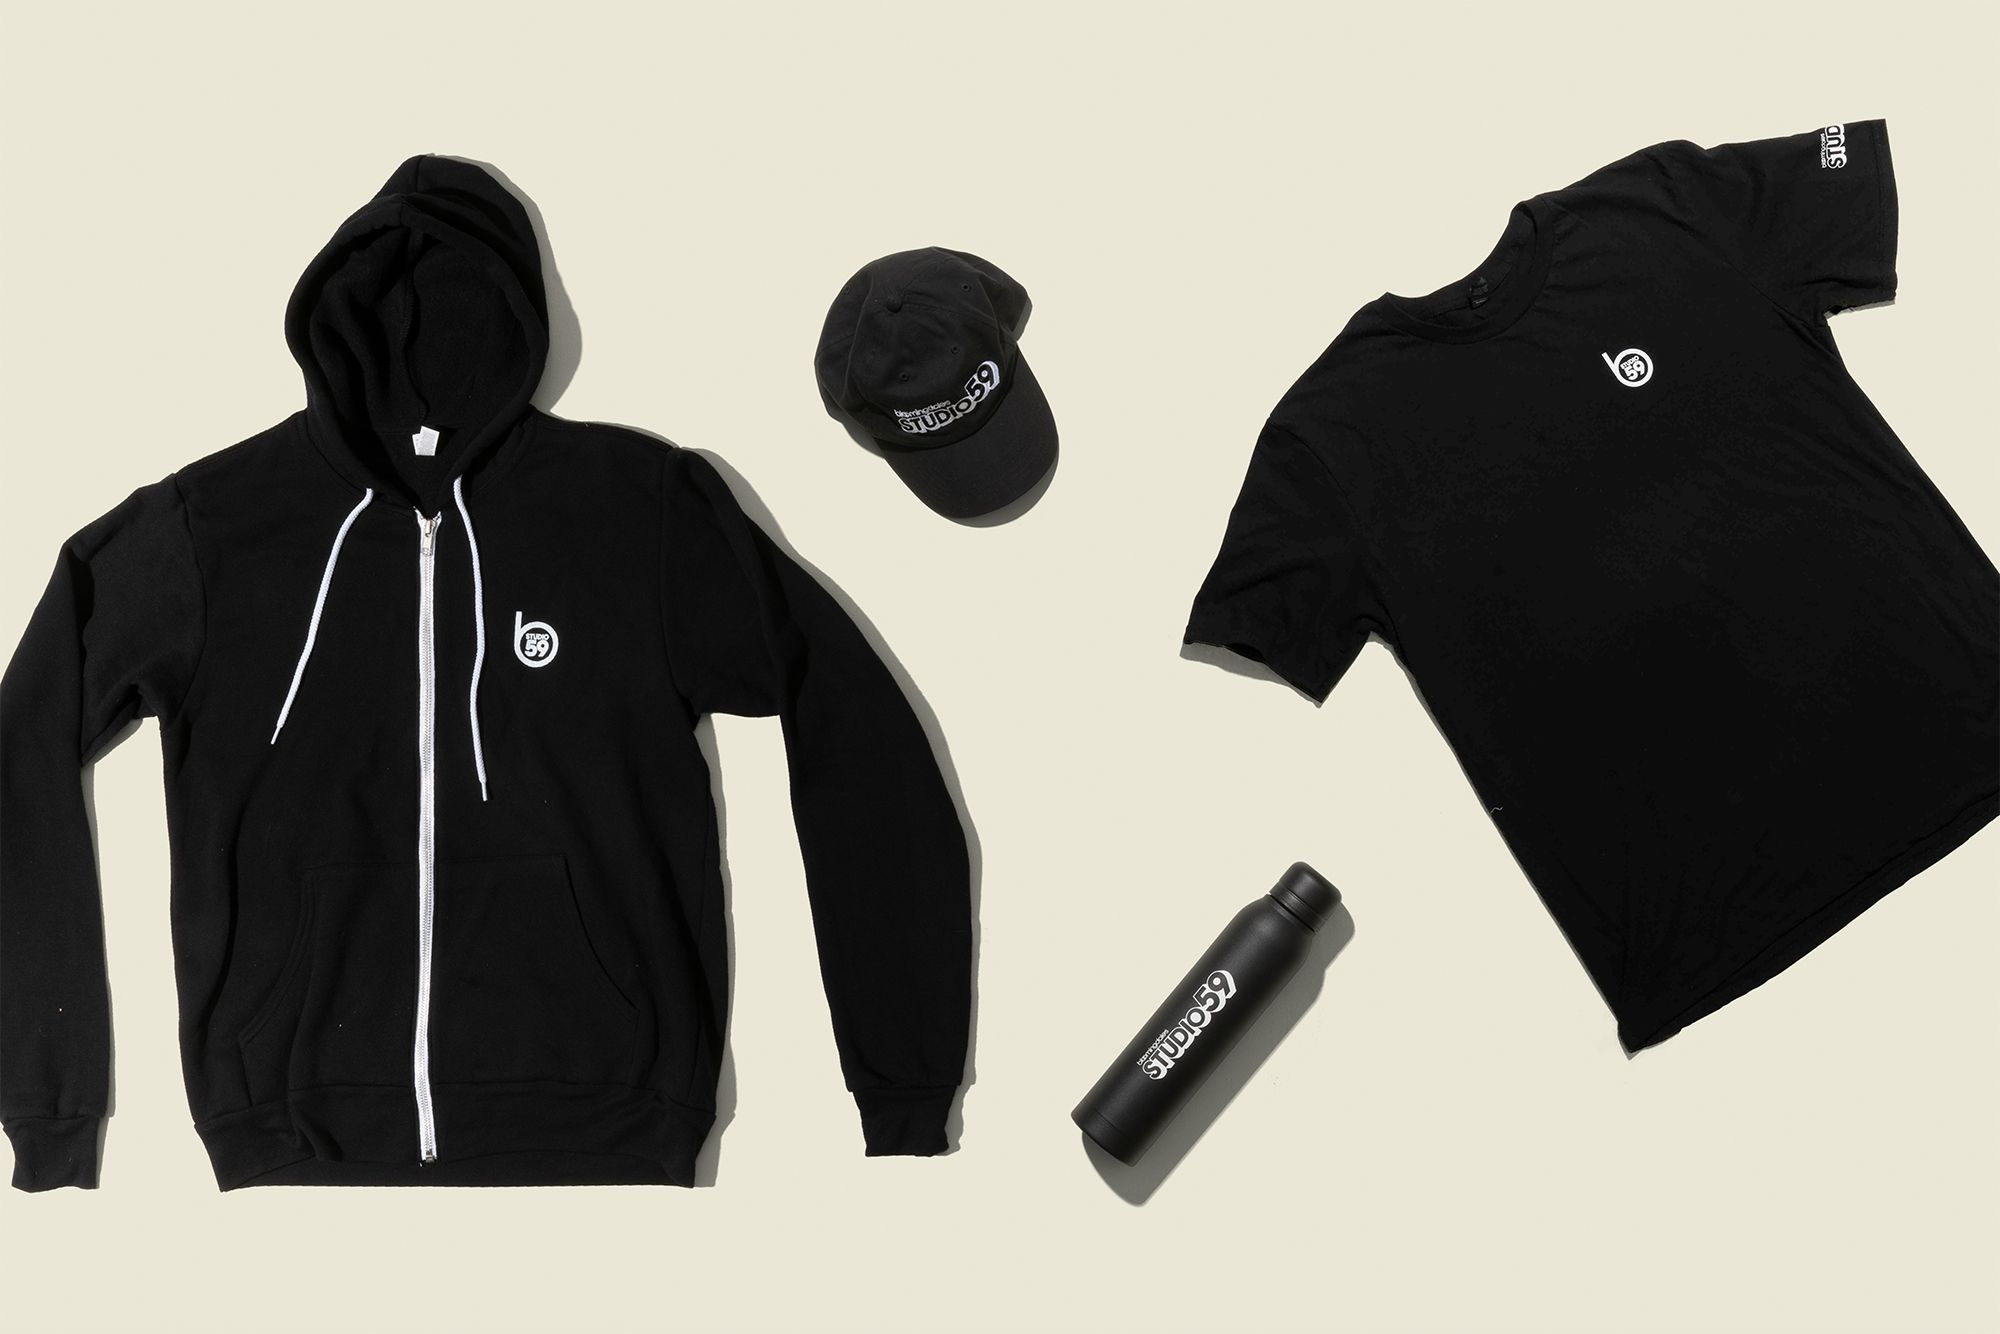 Zipper hoodie with t-shirt, water bottle and hat